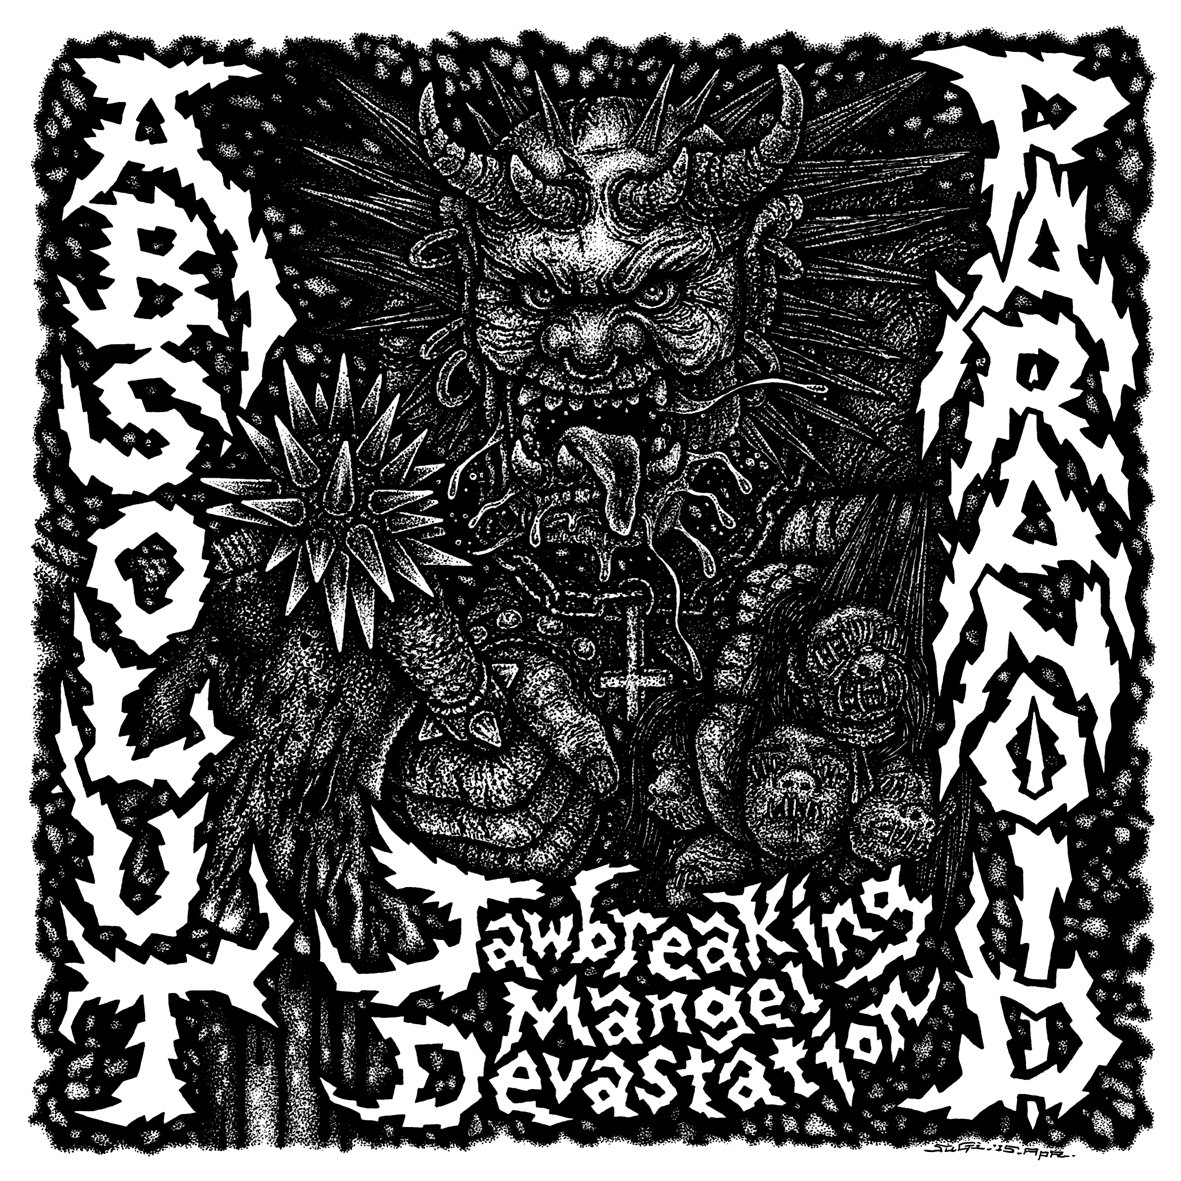 "ABSOLUT/PARANOID ""Jawbreaking mangel devastation"" LP"